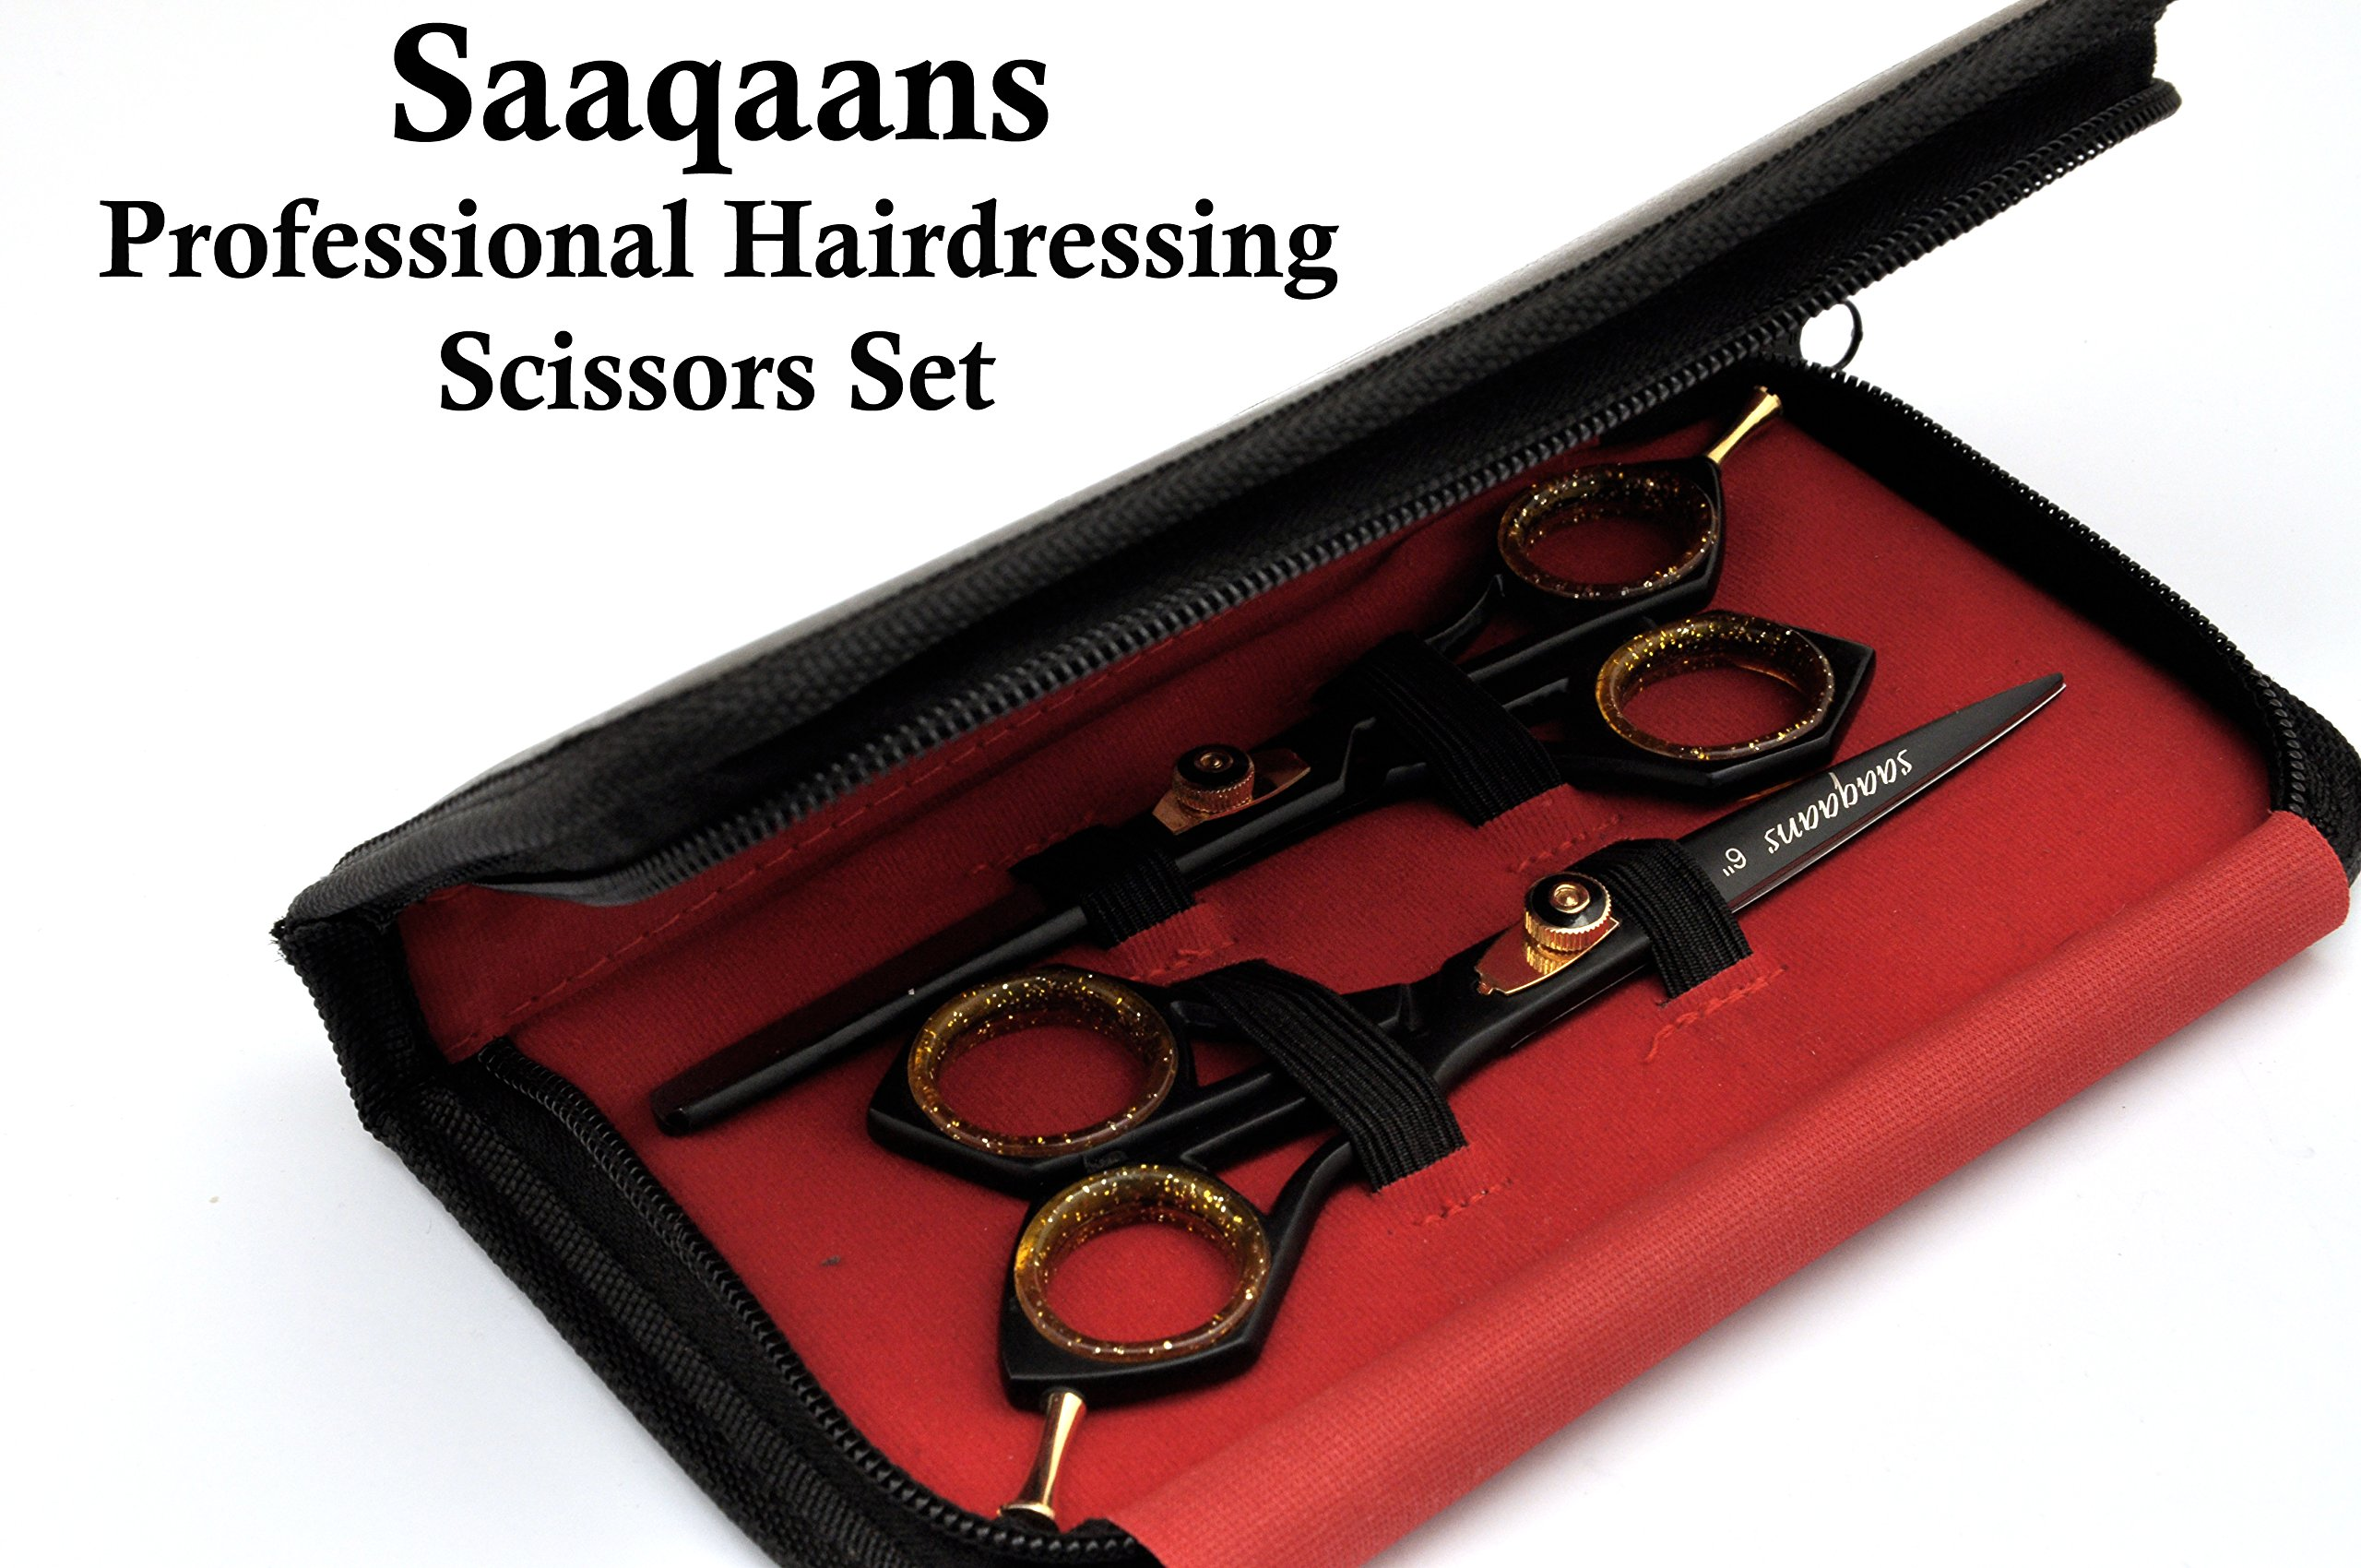 Saaqaans SQKIT Professional Hairdressing Scissors Set - Package includes Barber Scissor, Thinning Shear, Straight Razor, 10 x Derby Double Edge Blades and Hair Comb in Stylish Black Scissors Case by Saaqaans (Image #6)